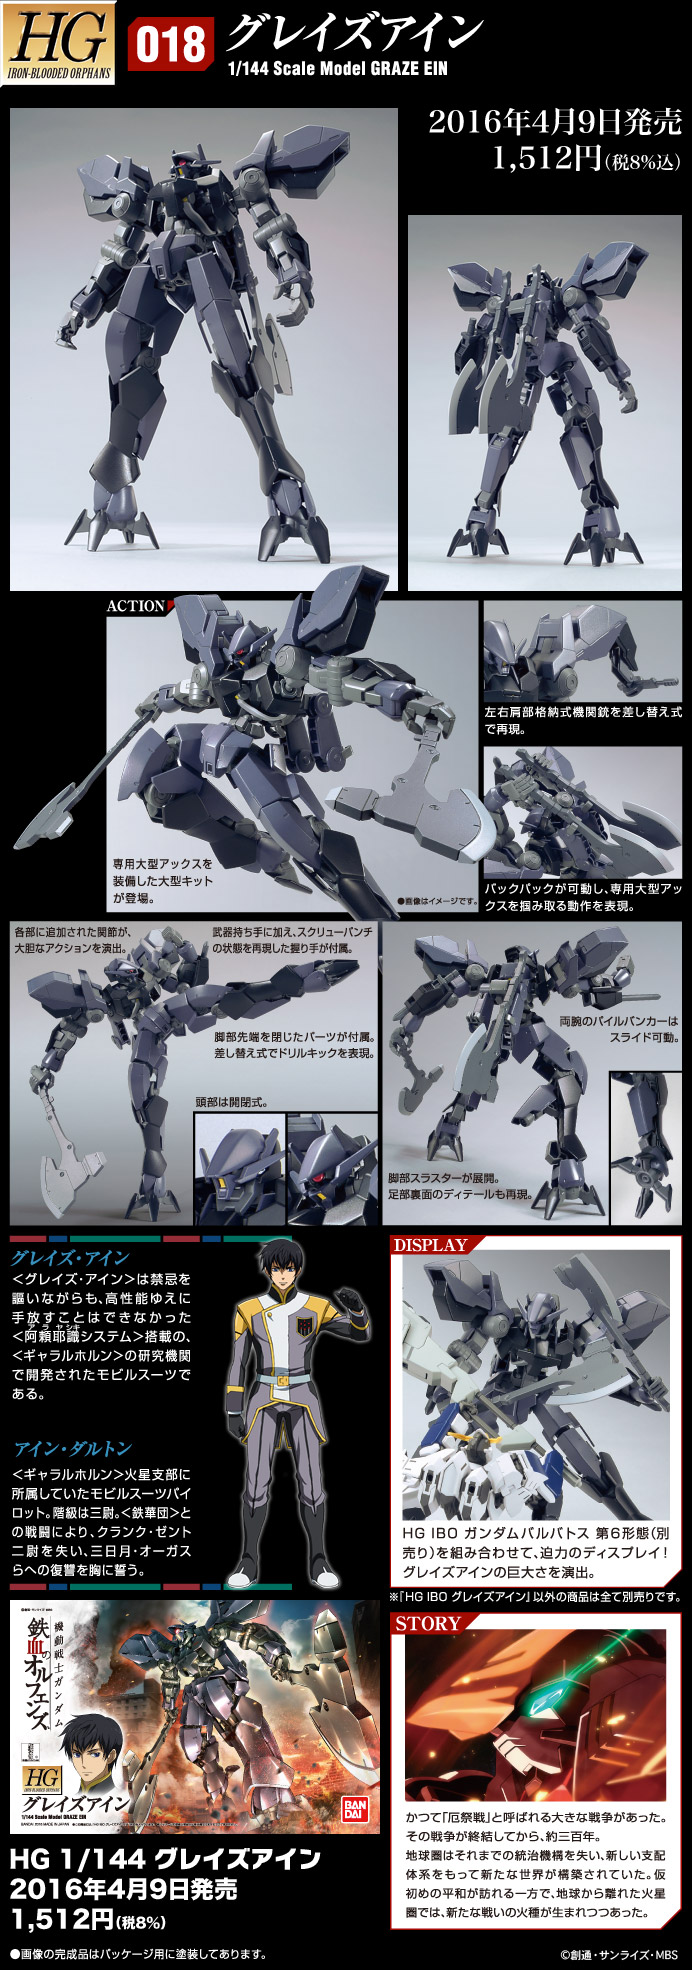 [2nd UPDATE] HGIBO 1/144 GRAZE EIN: NEW Official Images, Info Release